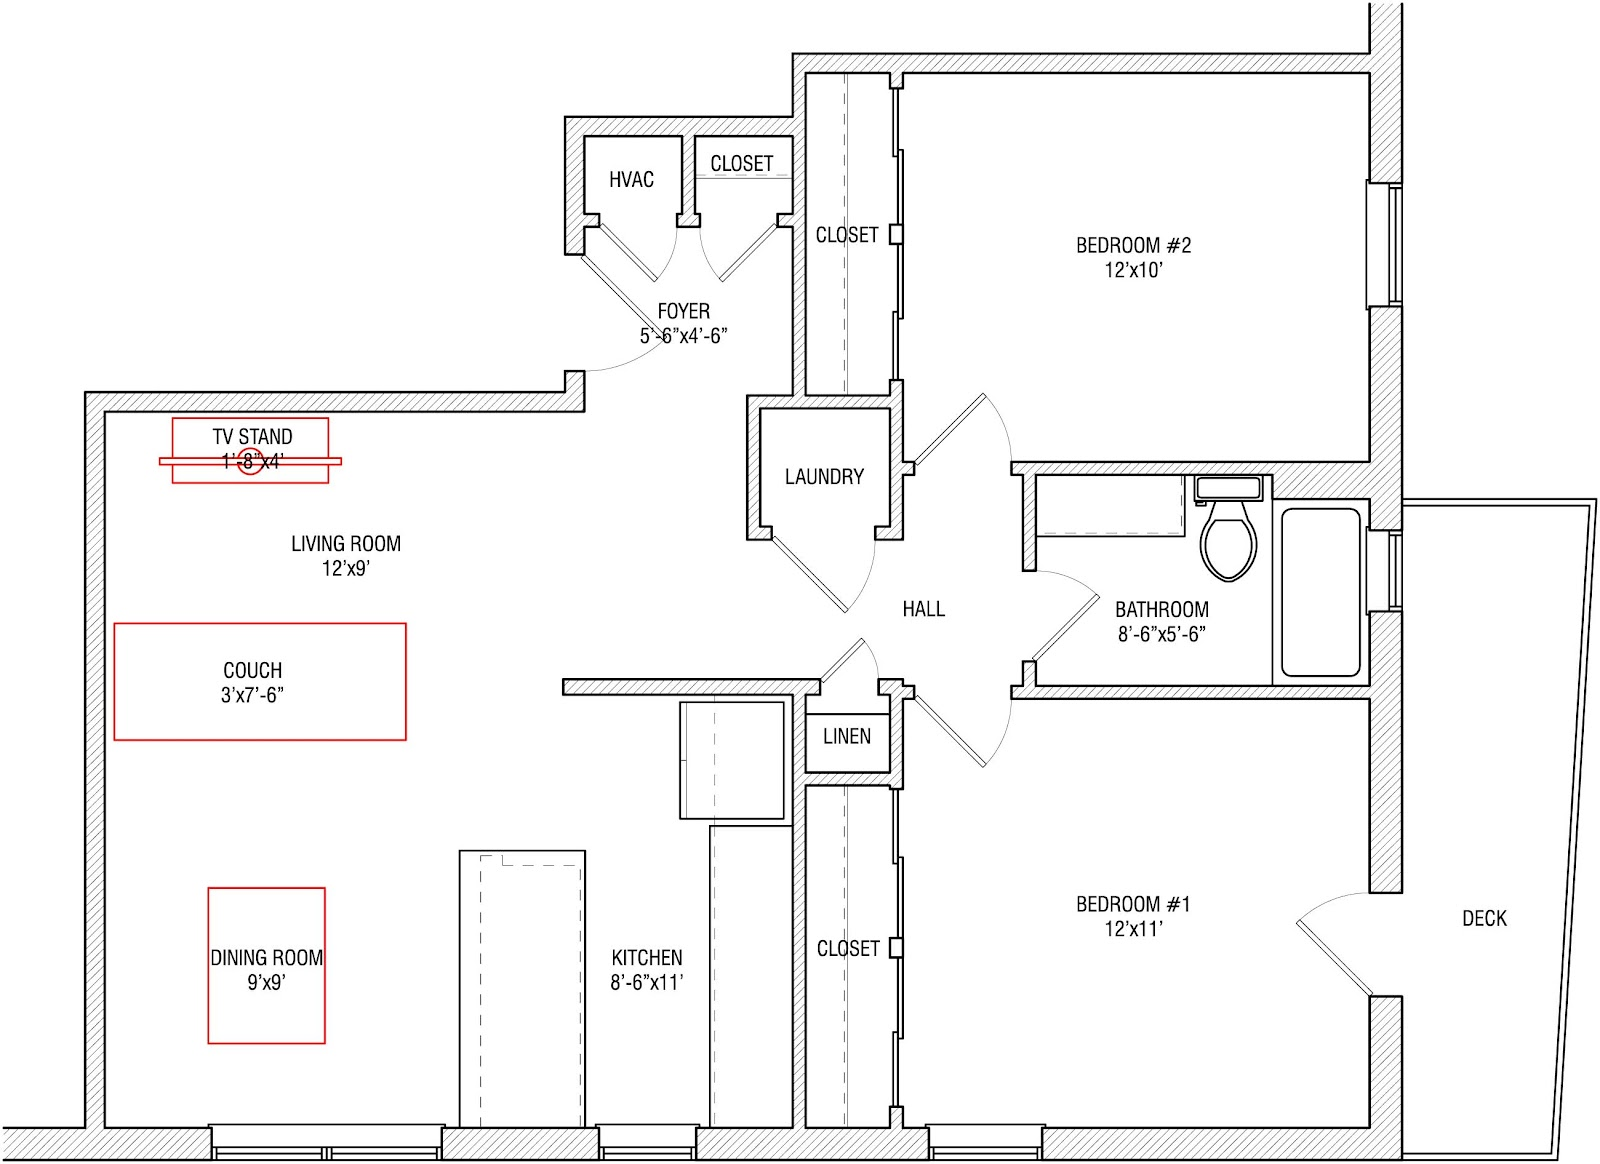 apartment drawing plans home decorating colours